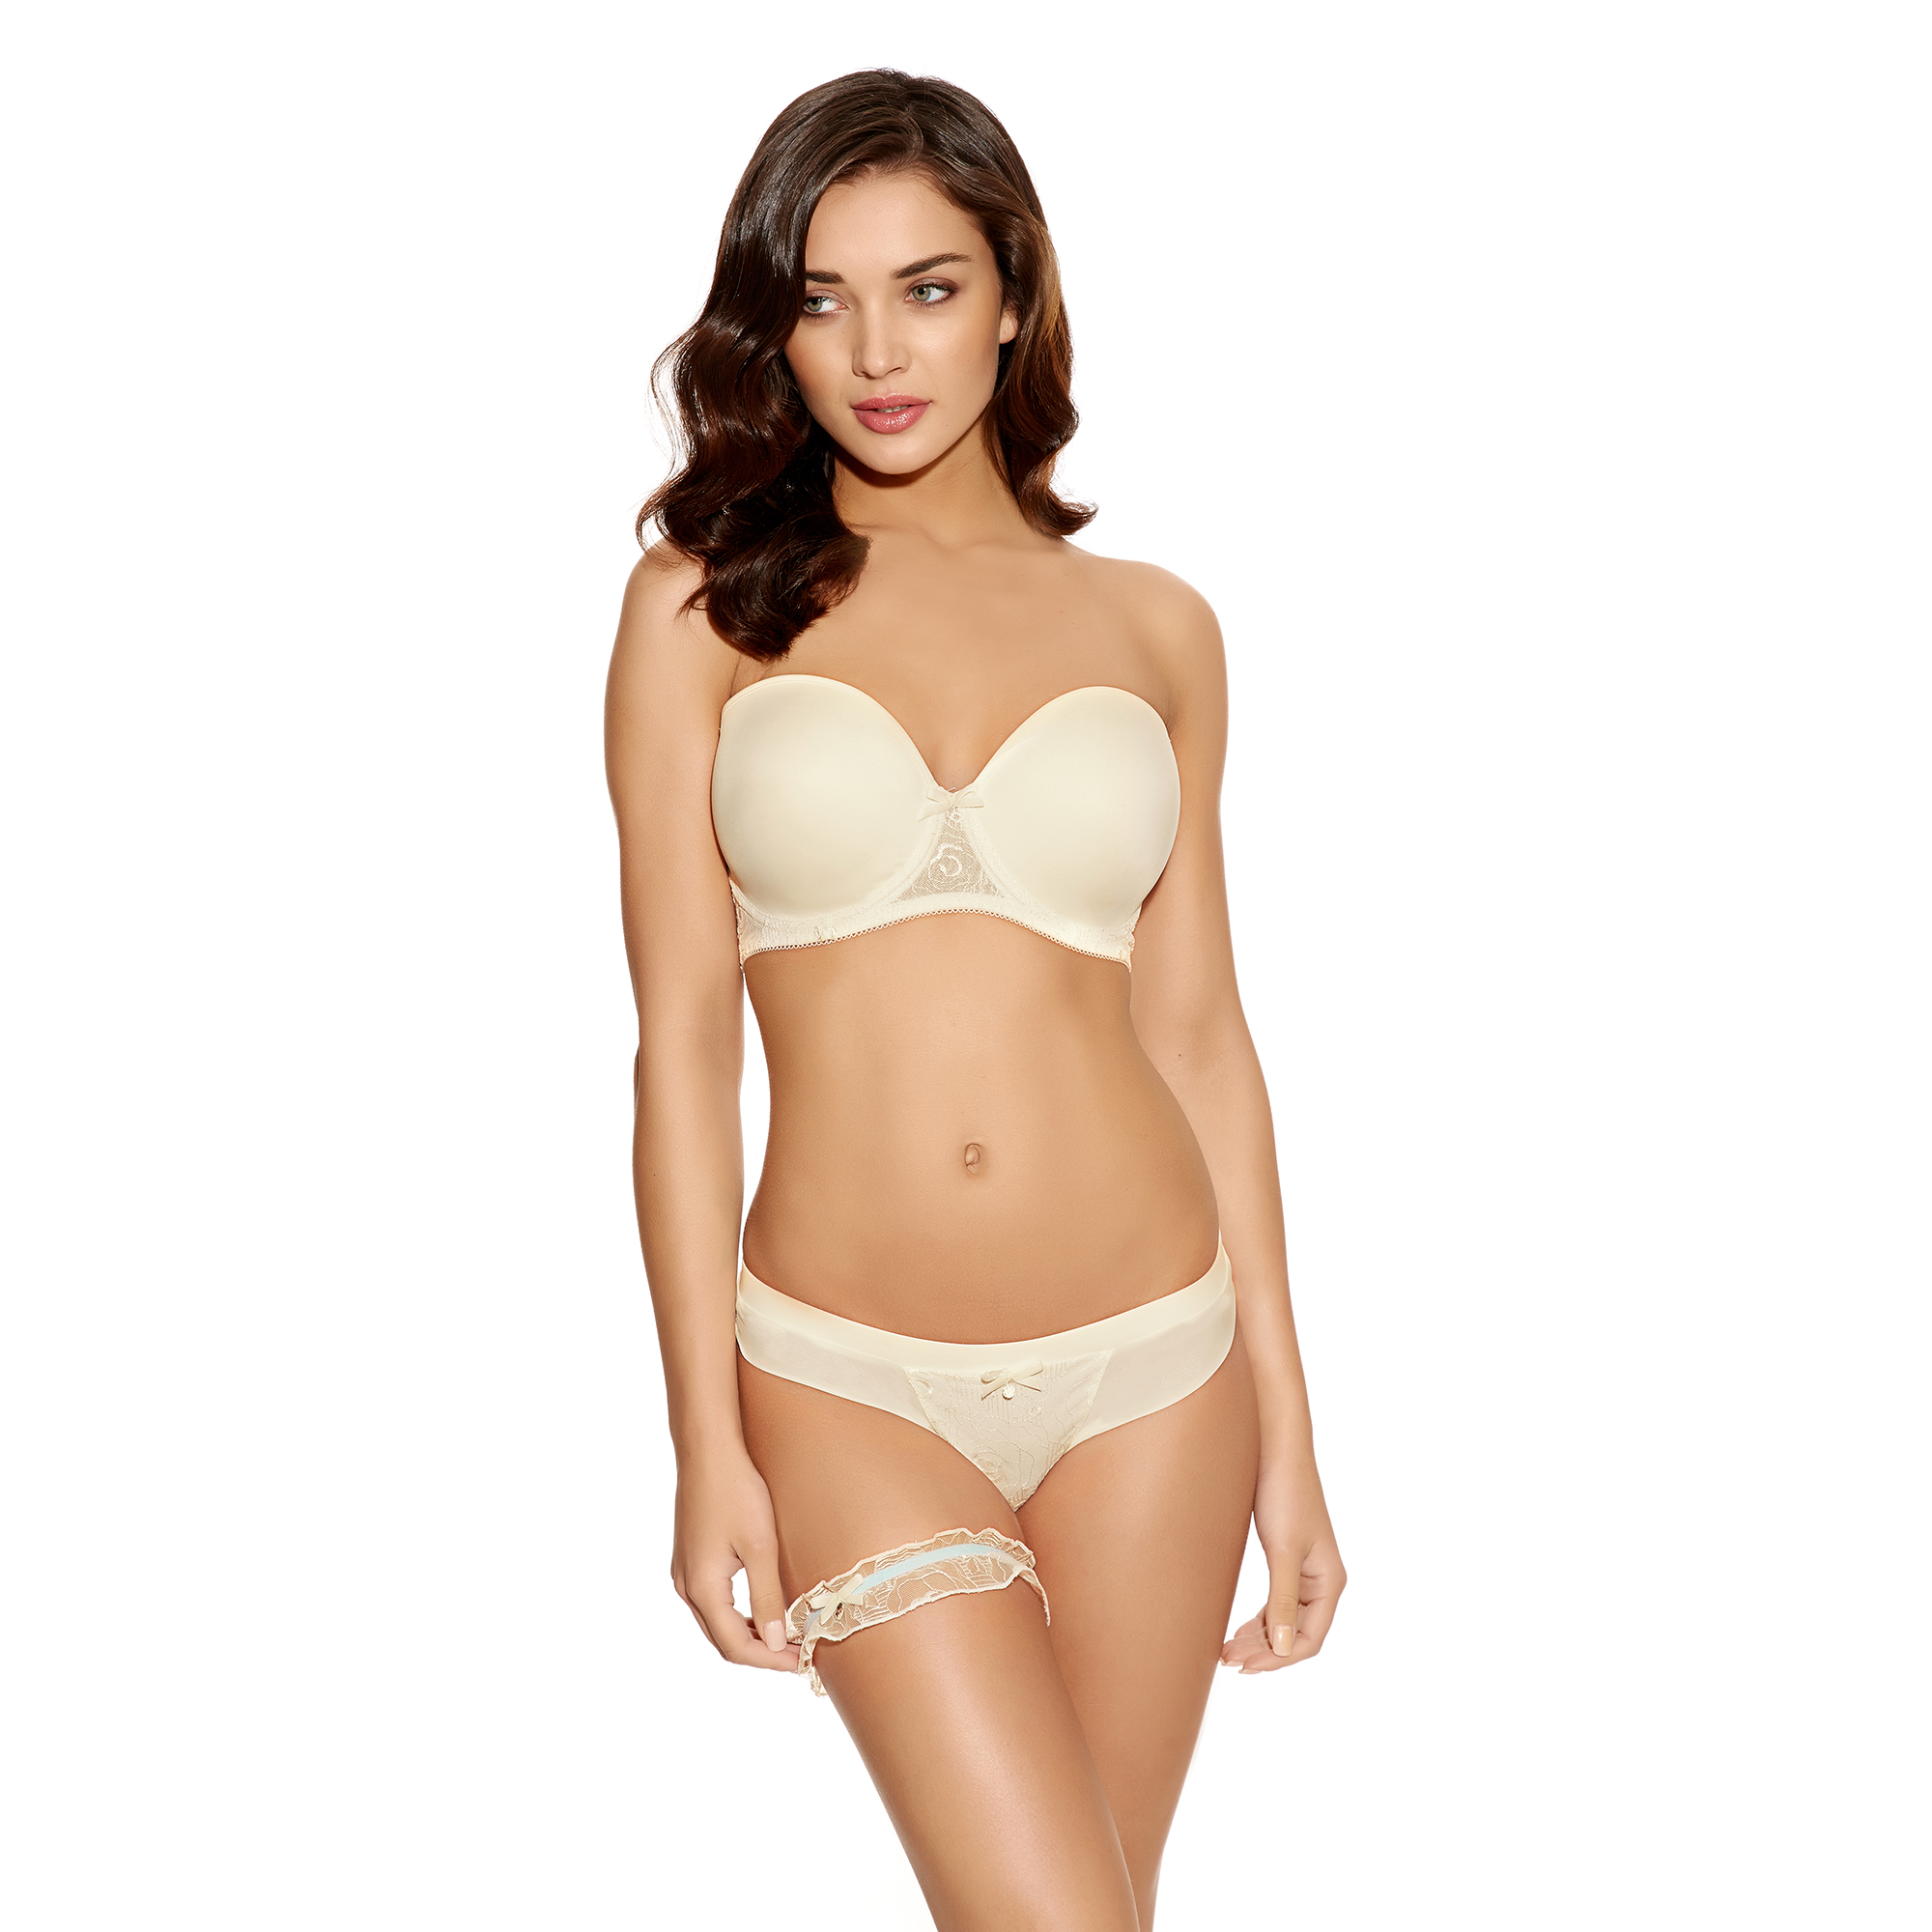 6f491cce764 DECO-DARLING-IVORY-UNDERWIRED-MOULDED-STRAPLESS-BRA-1773 -THONG-1777-GARTER-1771-F